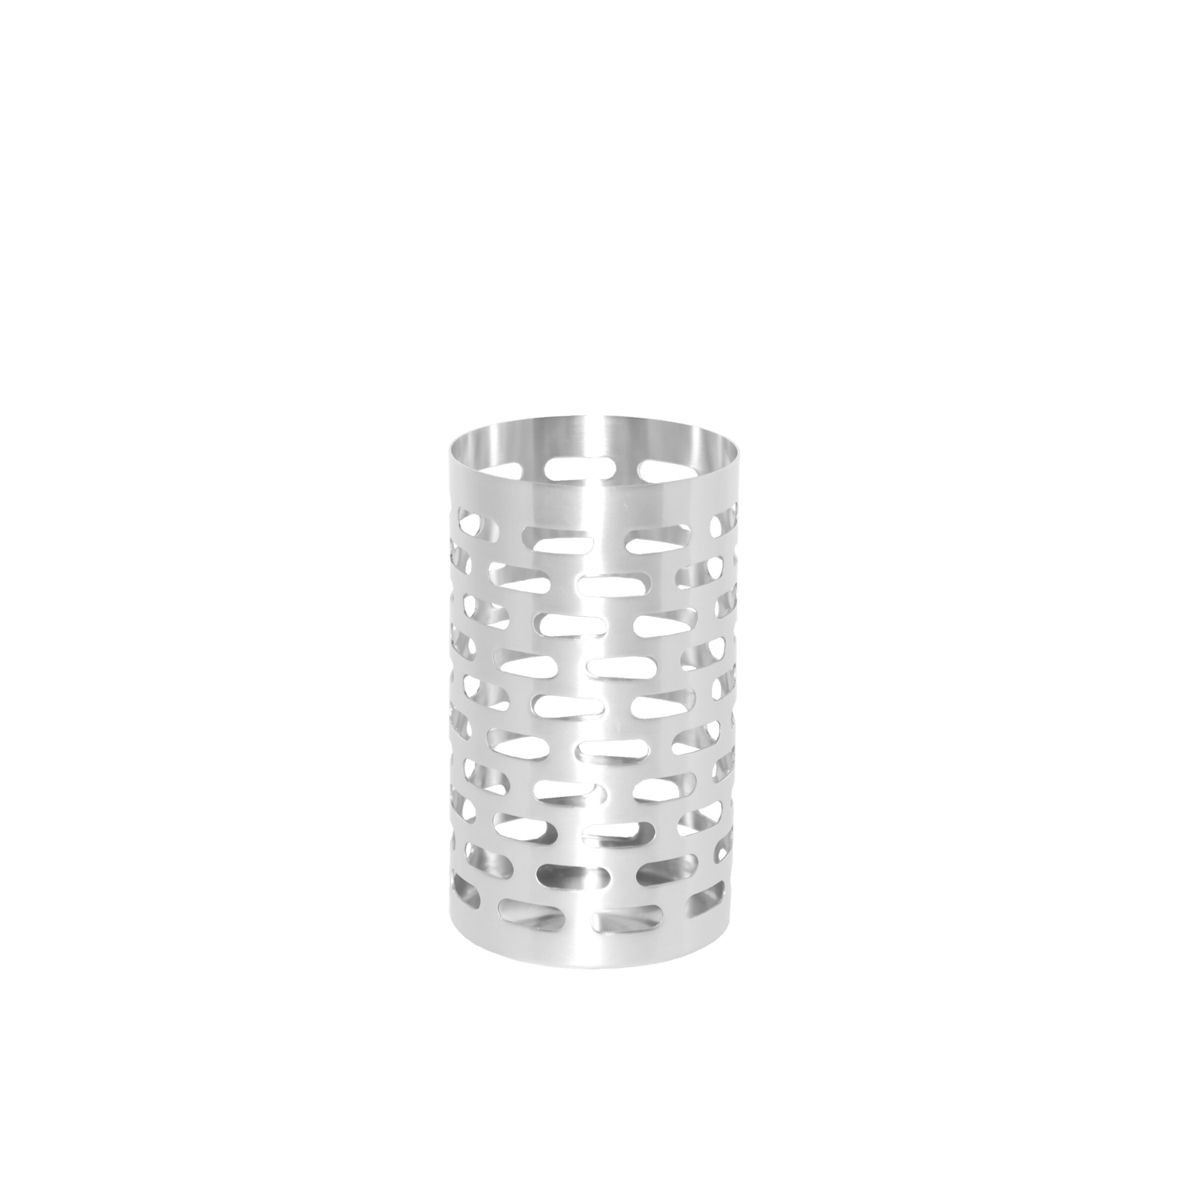 "Service Ideas SB-70 SteelForme Bread Stick Holder, 3-1/2"" Dia. X 6""H,"